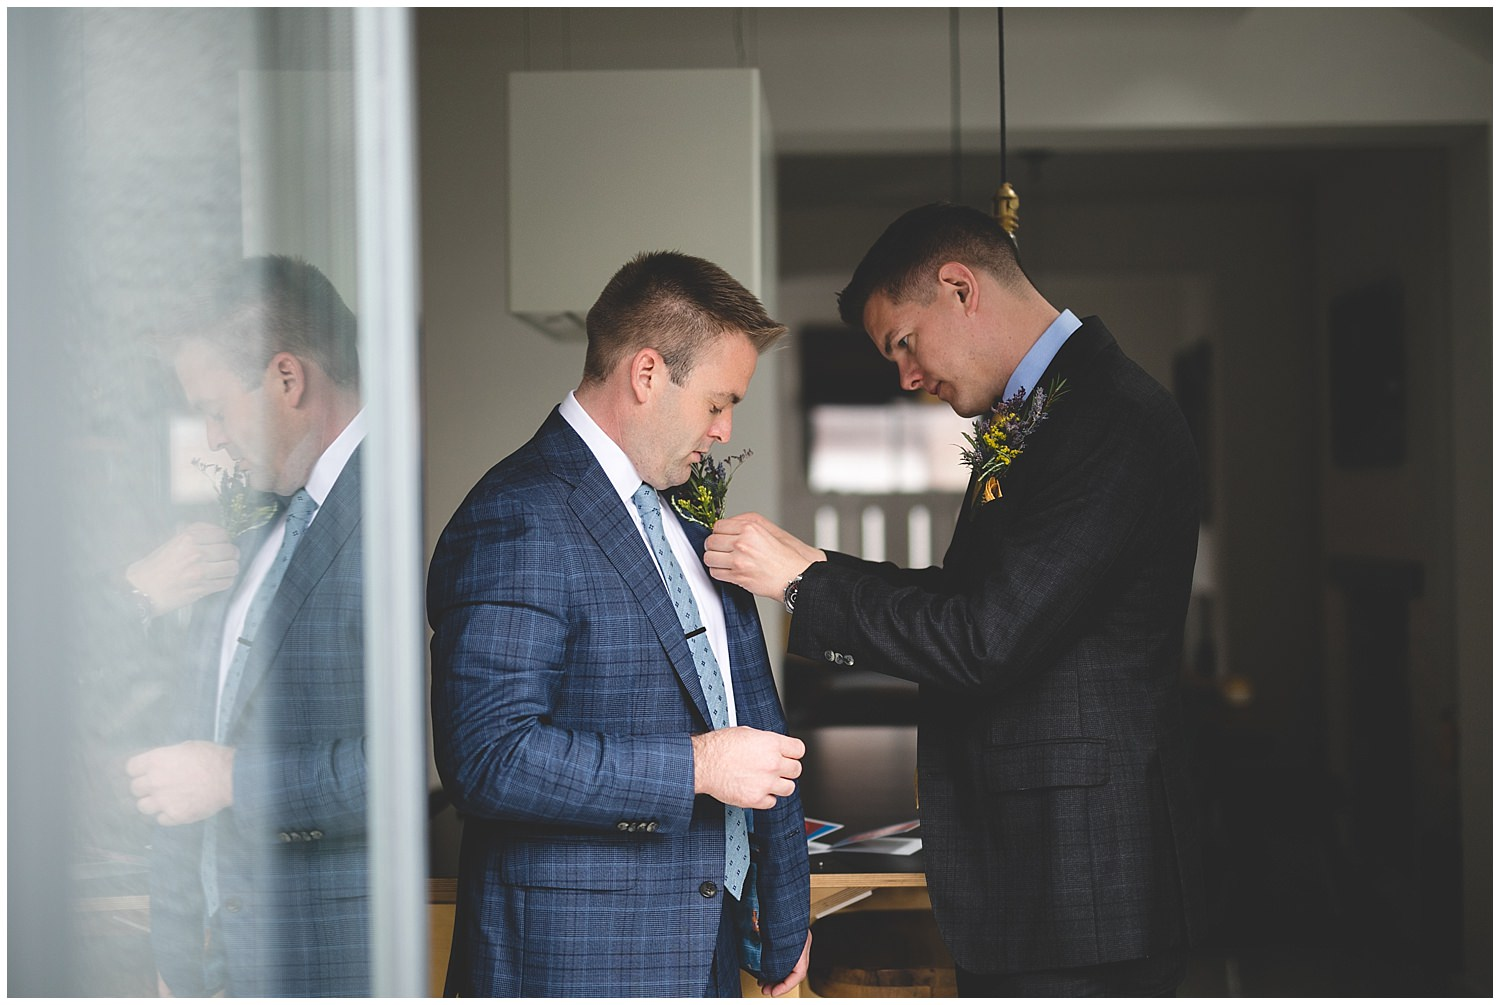 Grooms fixing each others boutonnieres